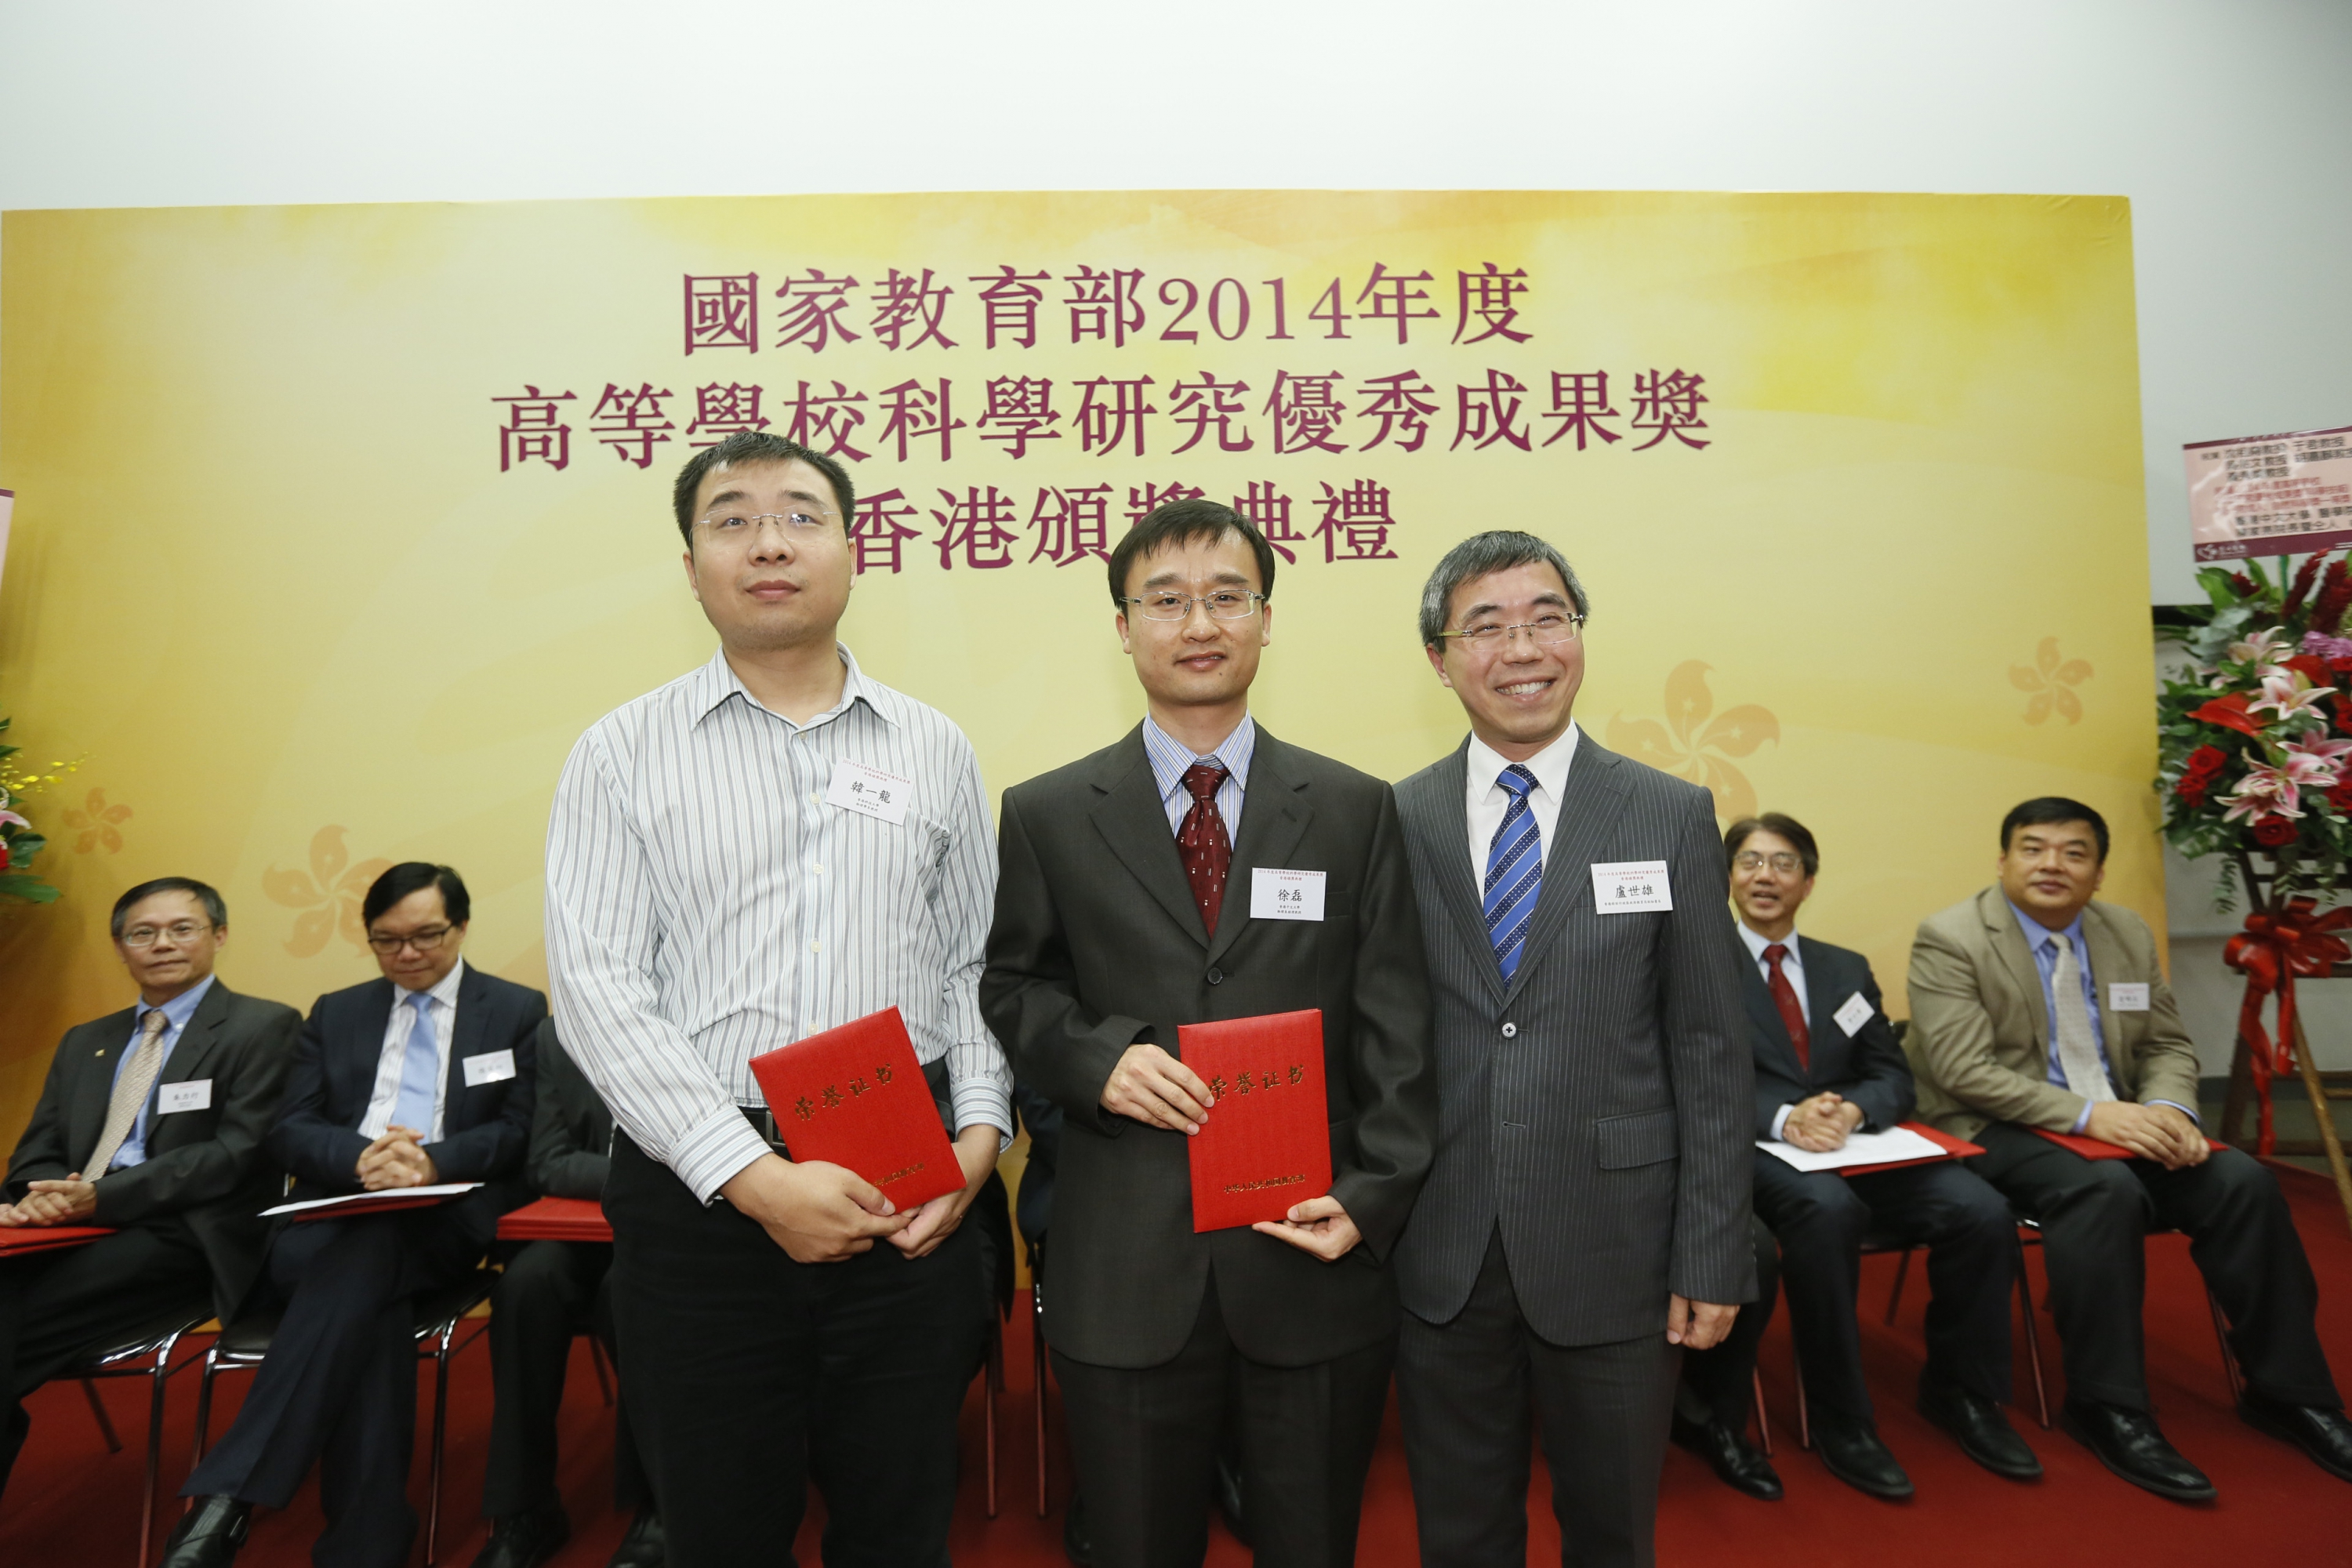 Prof. Lei Xu (middle) receives his award certificate from Mr. Brian Lo (right).